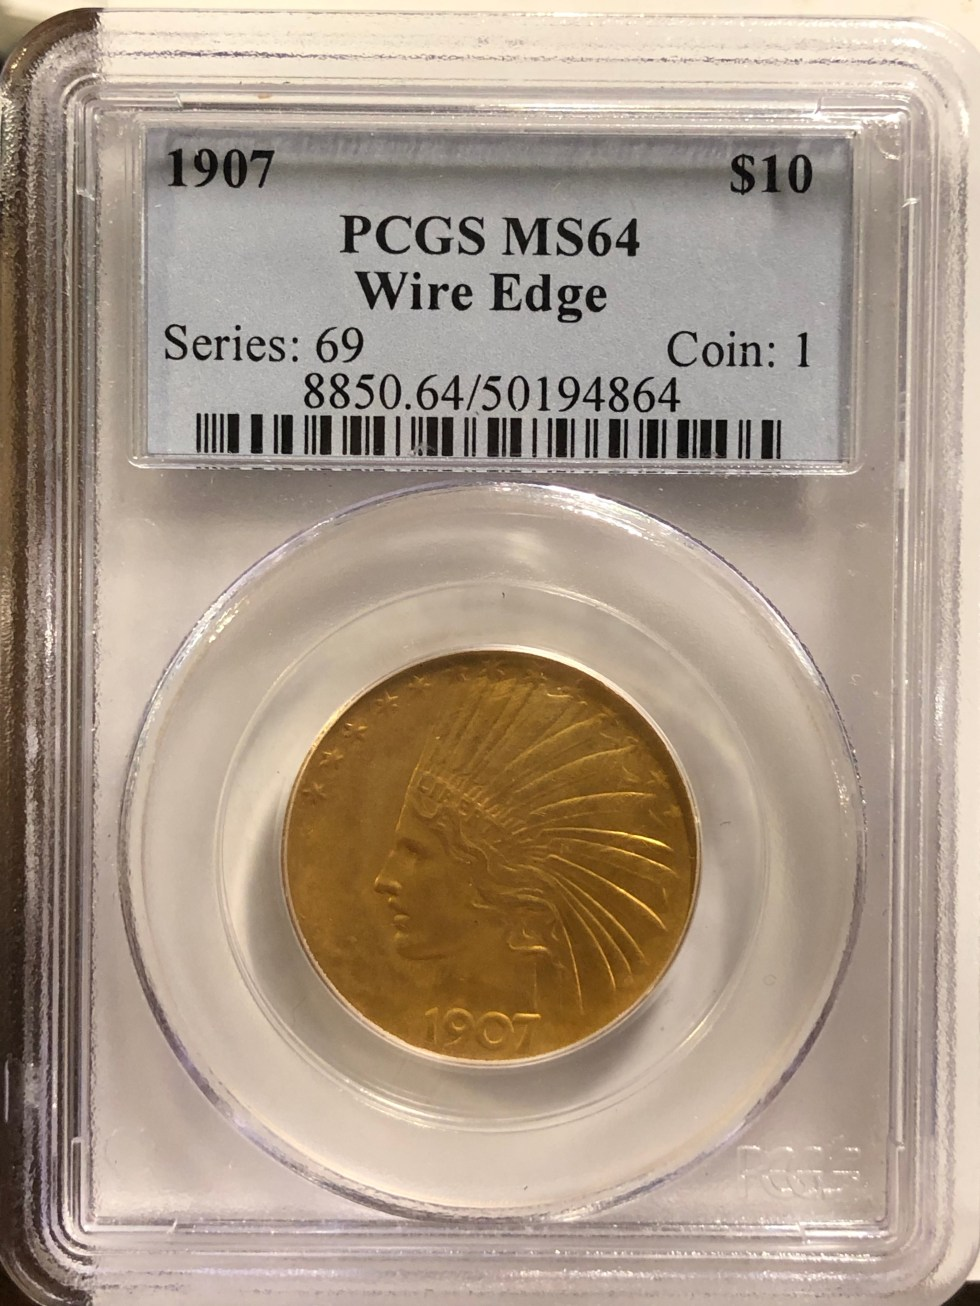 1907 Wire Rim $10 Indian PCGS MS64